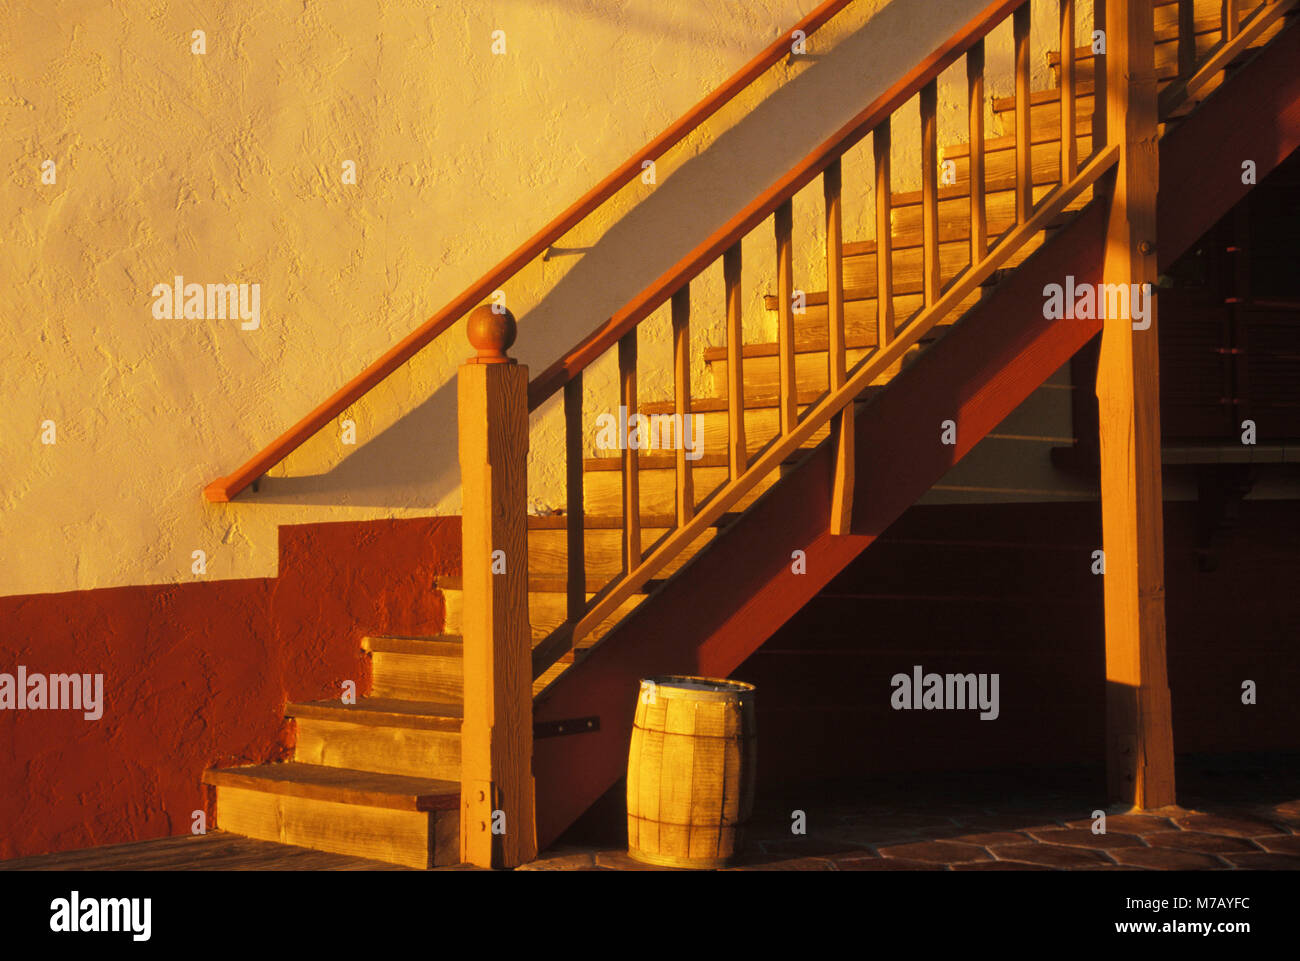 Close-up of staircases in a house - Stock Image